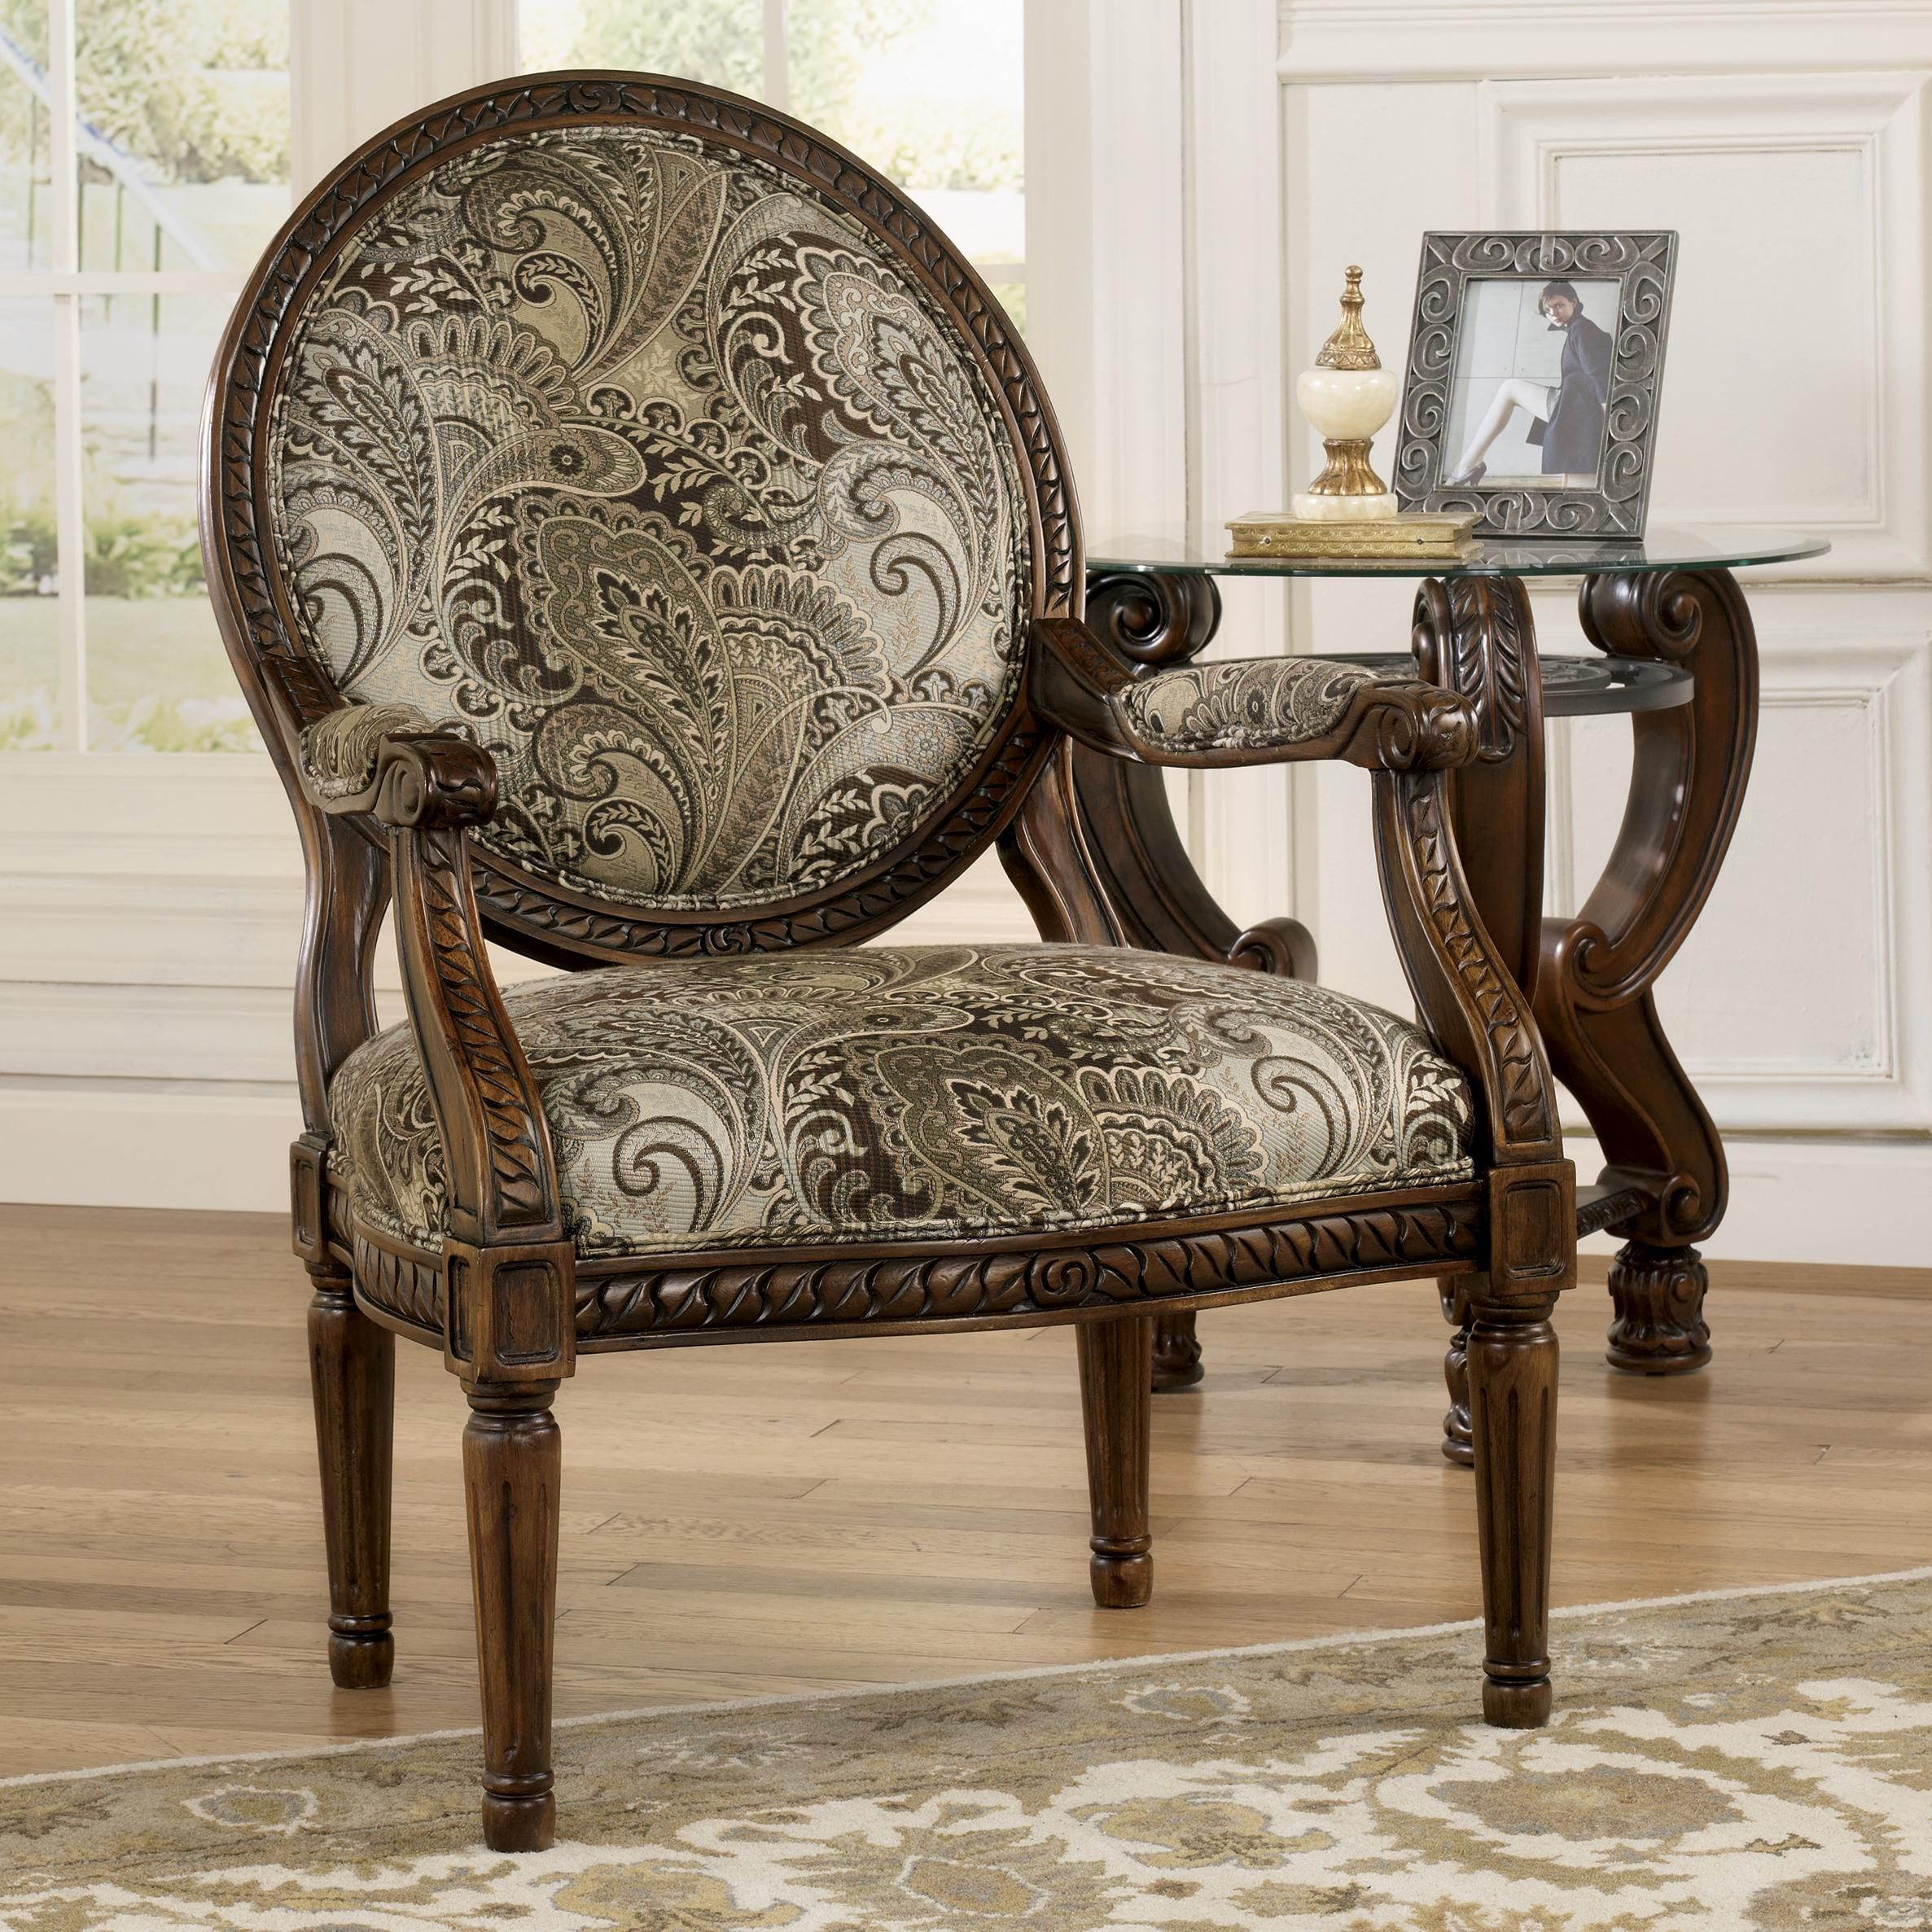 Get Your Martinsburg   Meadow   Showood Accent Chair At Railway Freight  Furniture, Albany GA Furniture Store.